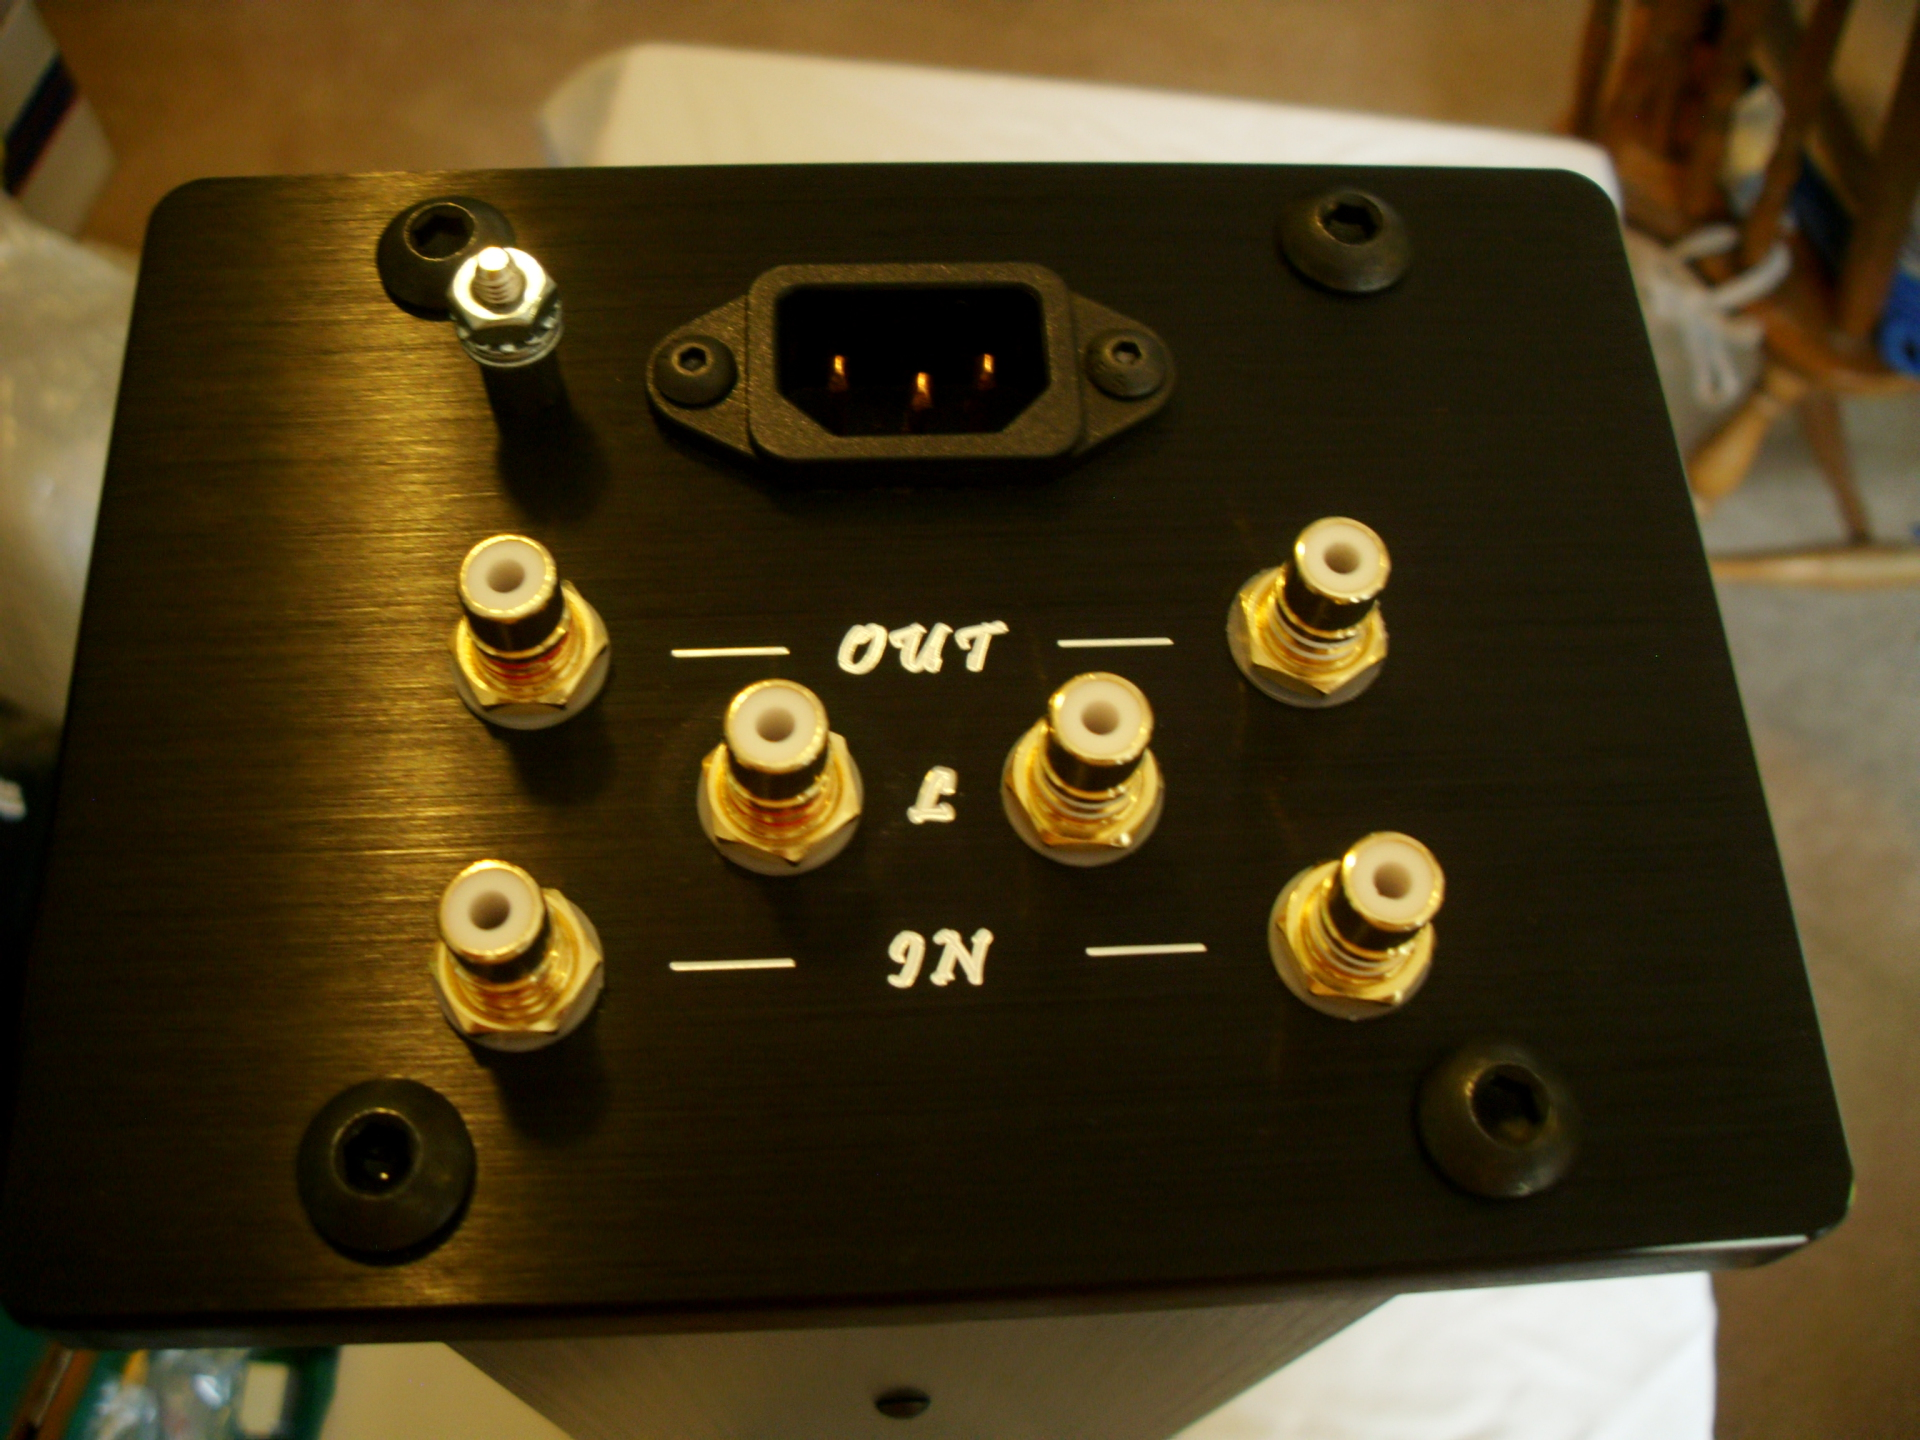 Paradox Pulse MC phono pre-amp